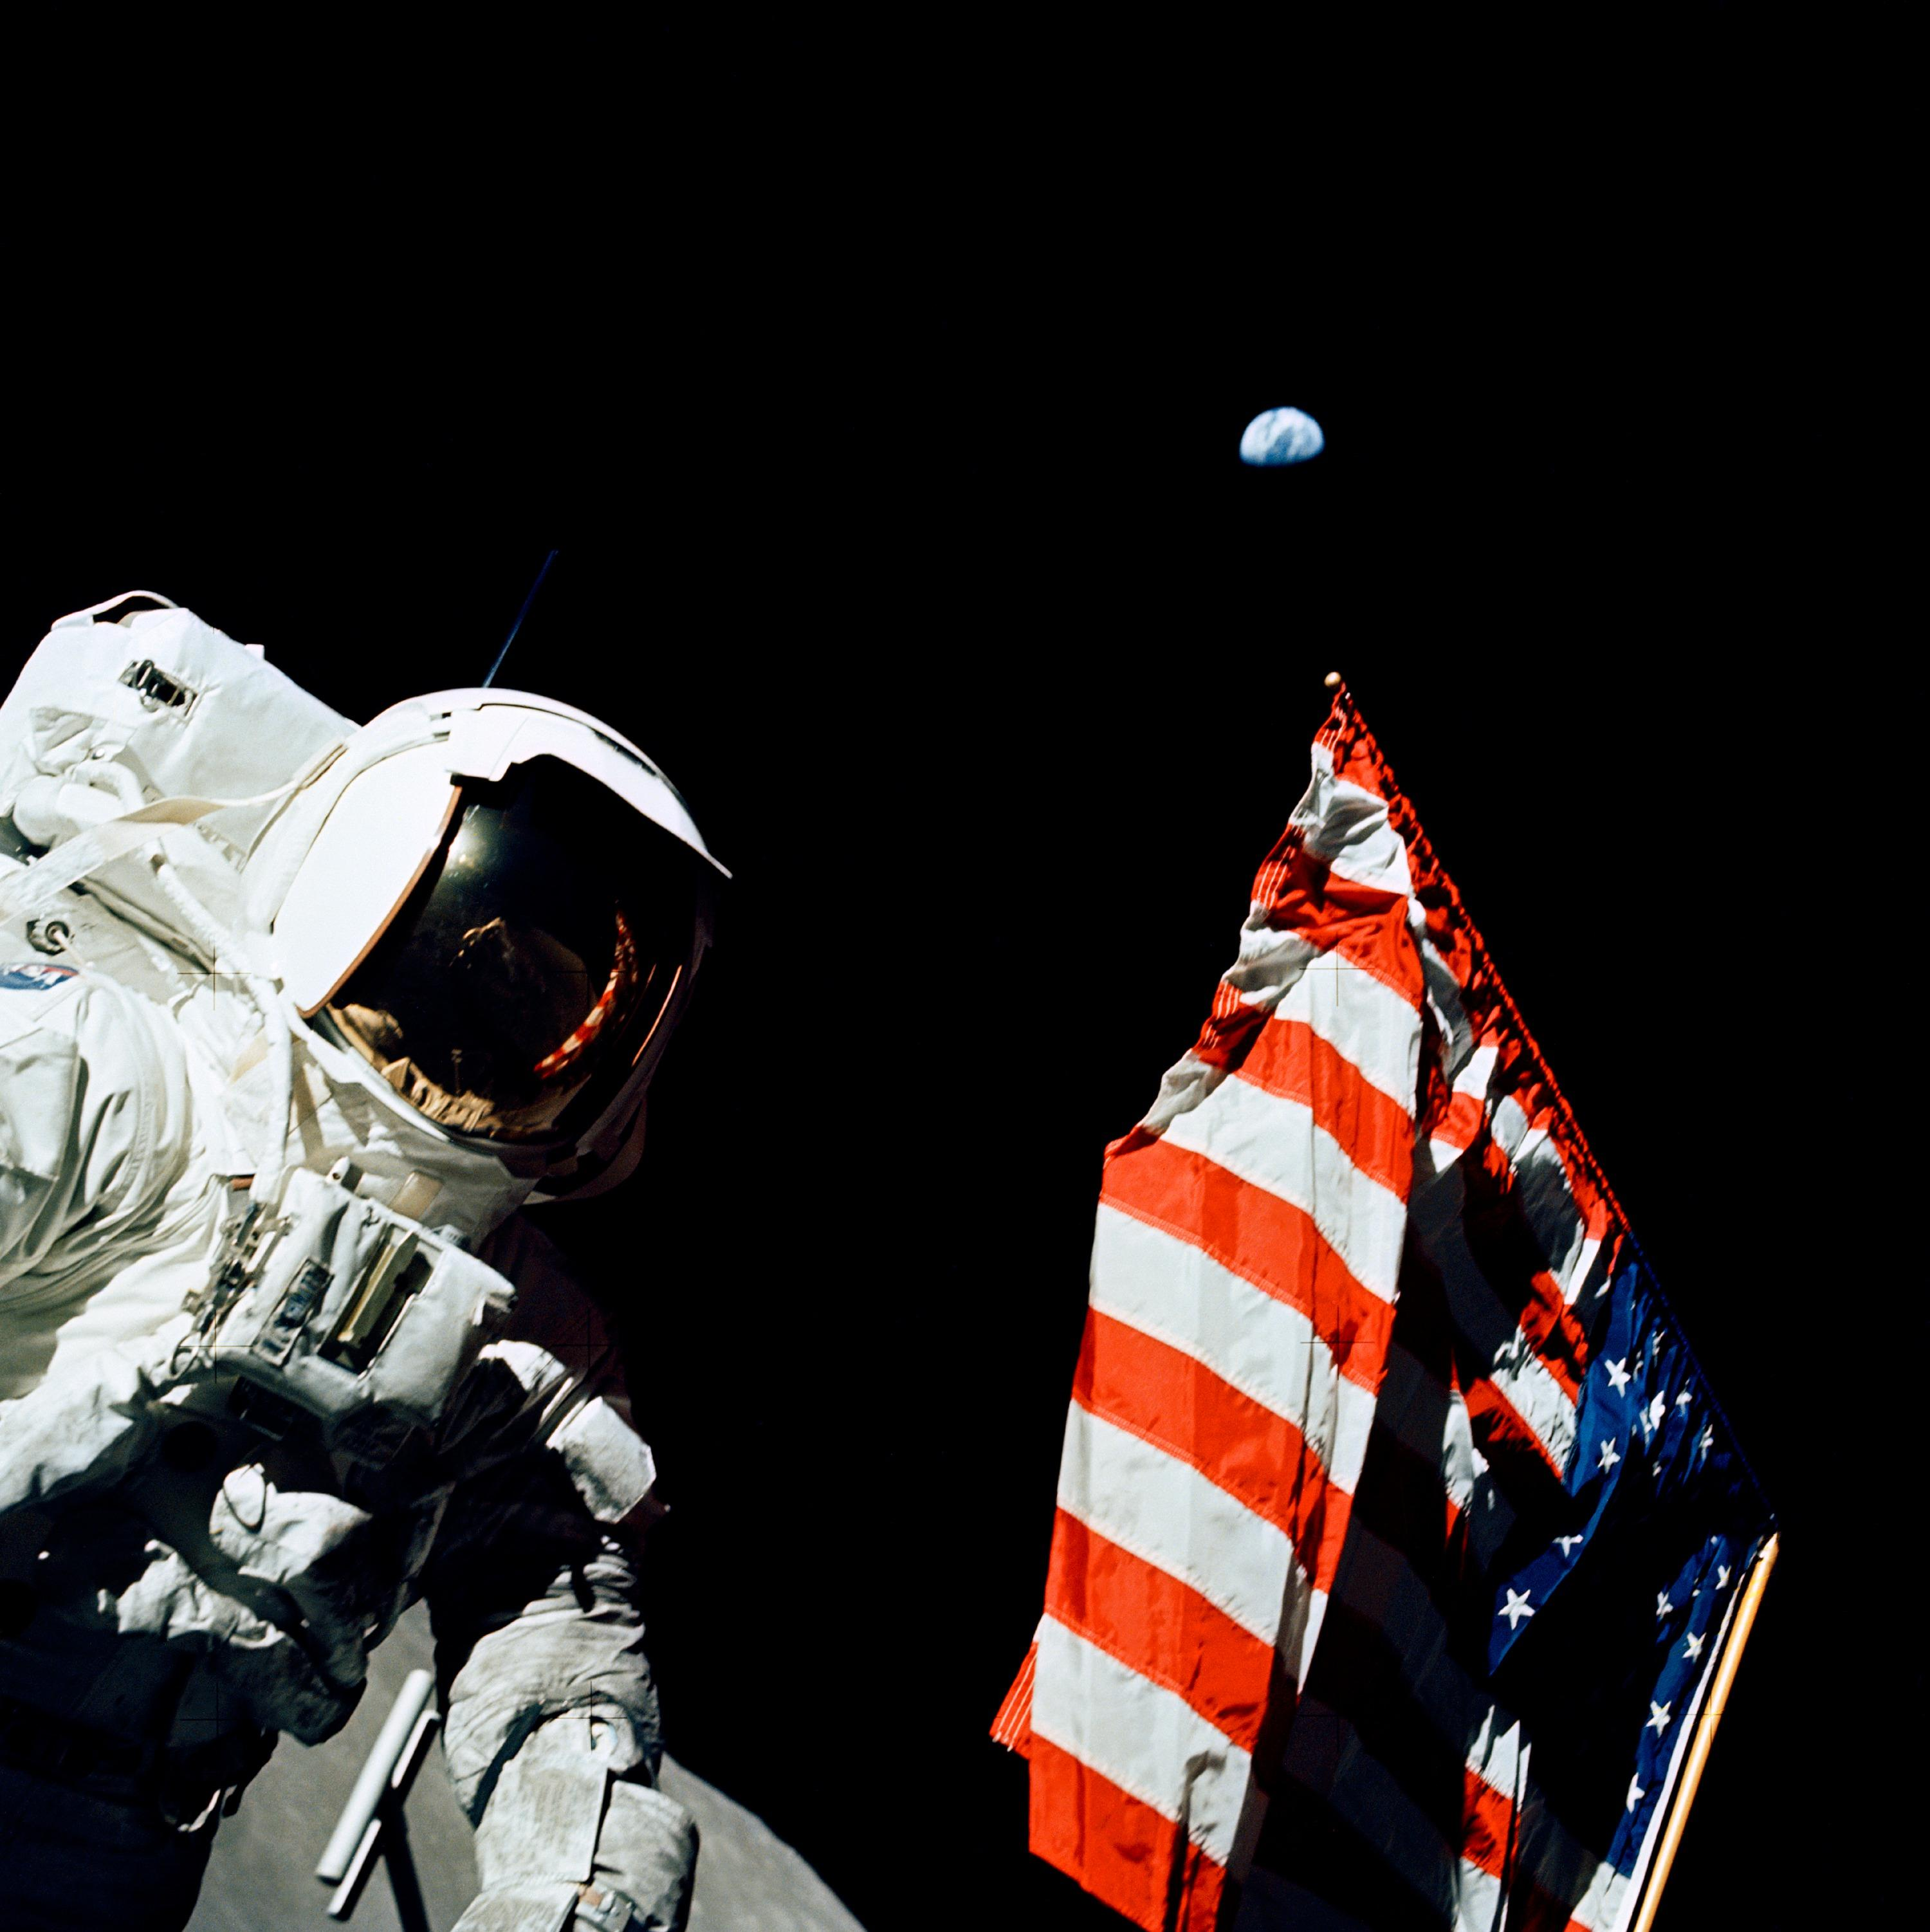 Moon Images Nasa a Scientist on The Moon